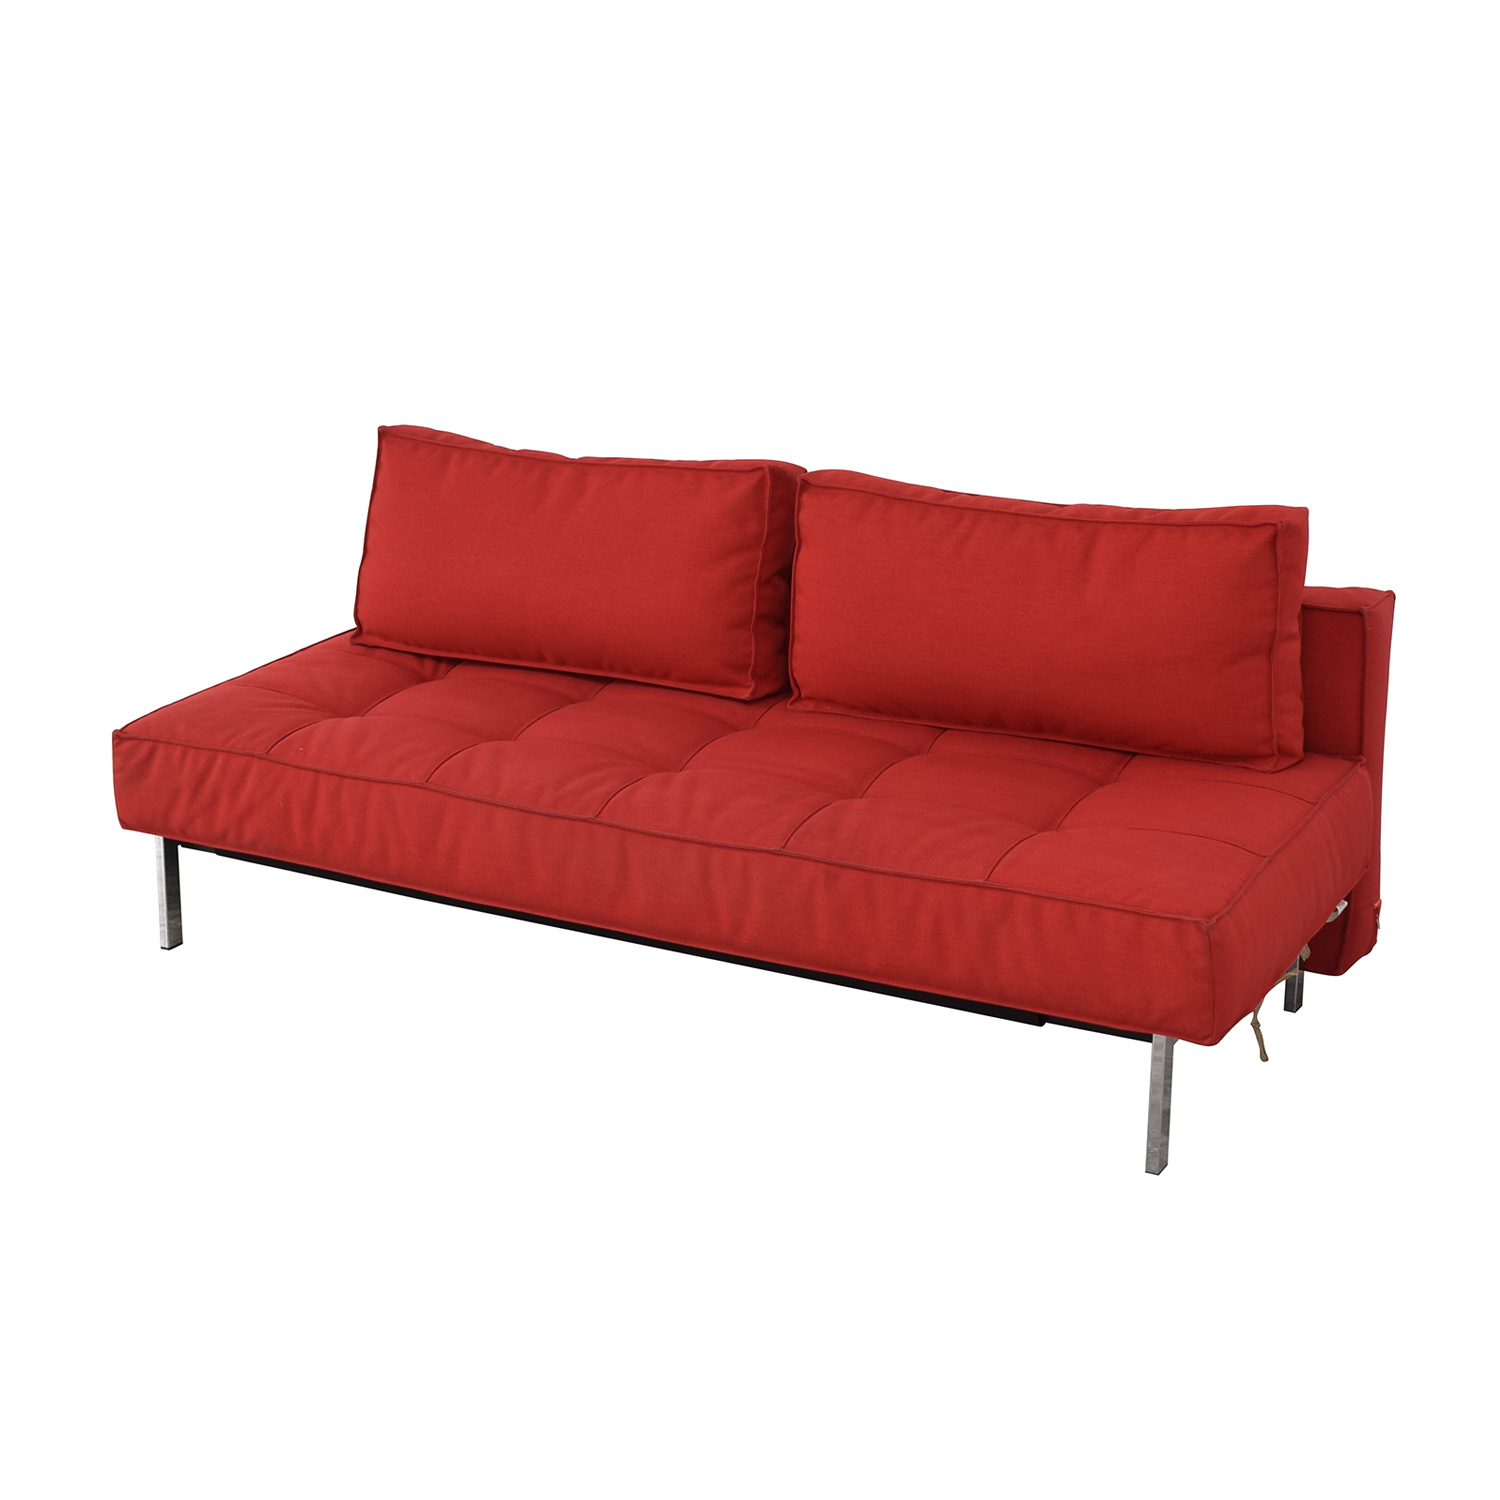 shop Innovation Living Red Tufted Twin Sleeper Sofa Innovation Living Classic Sofas